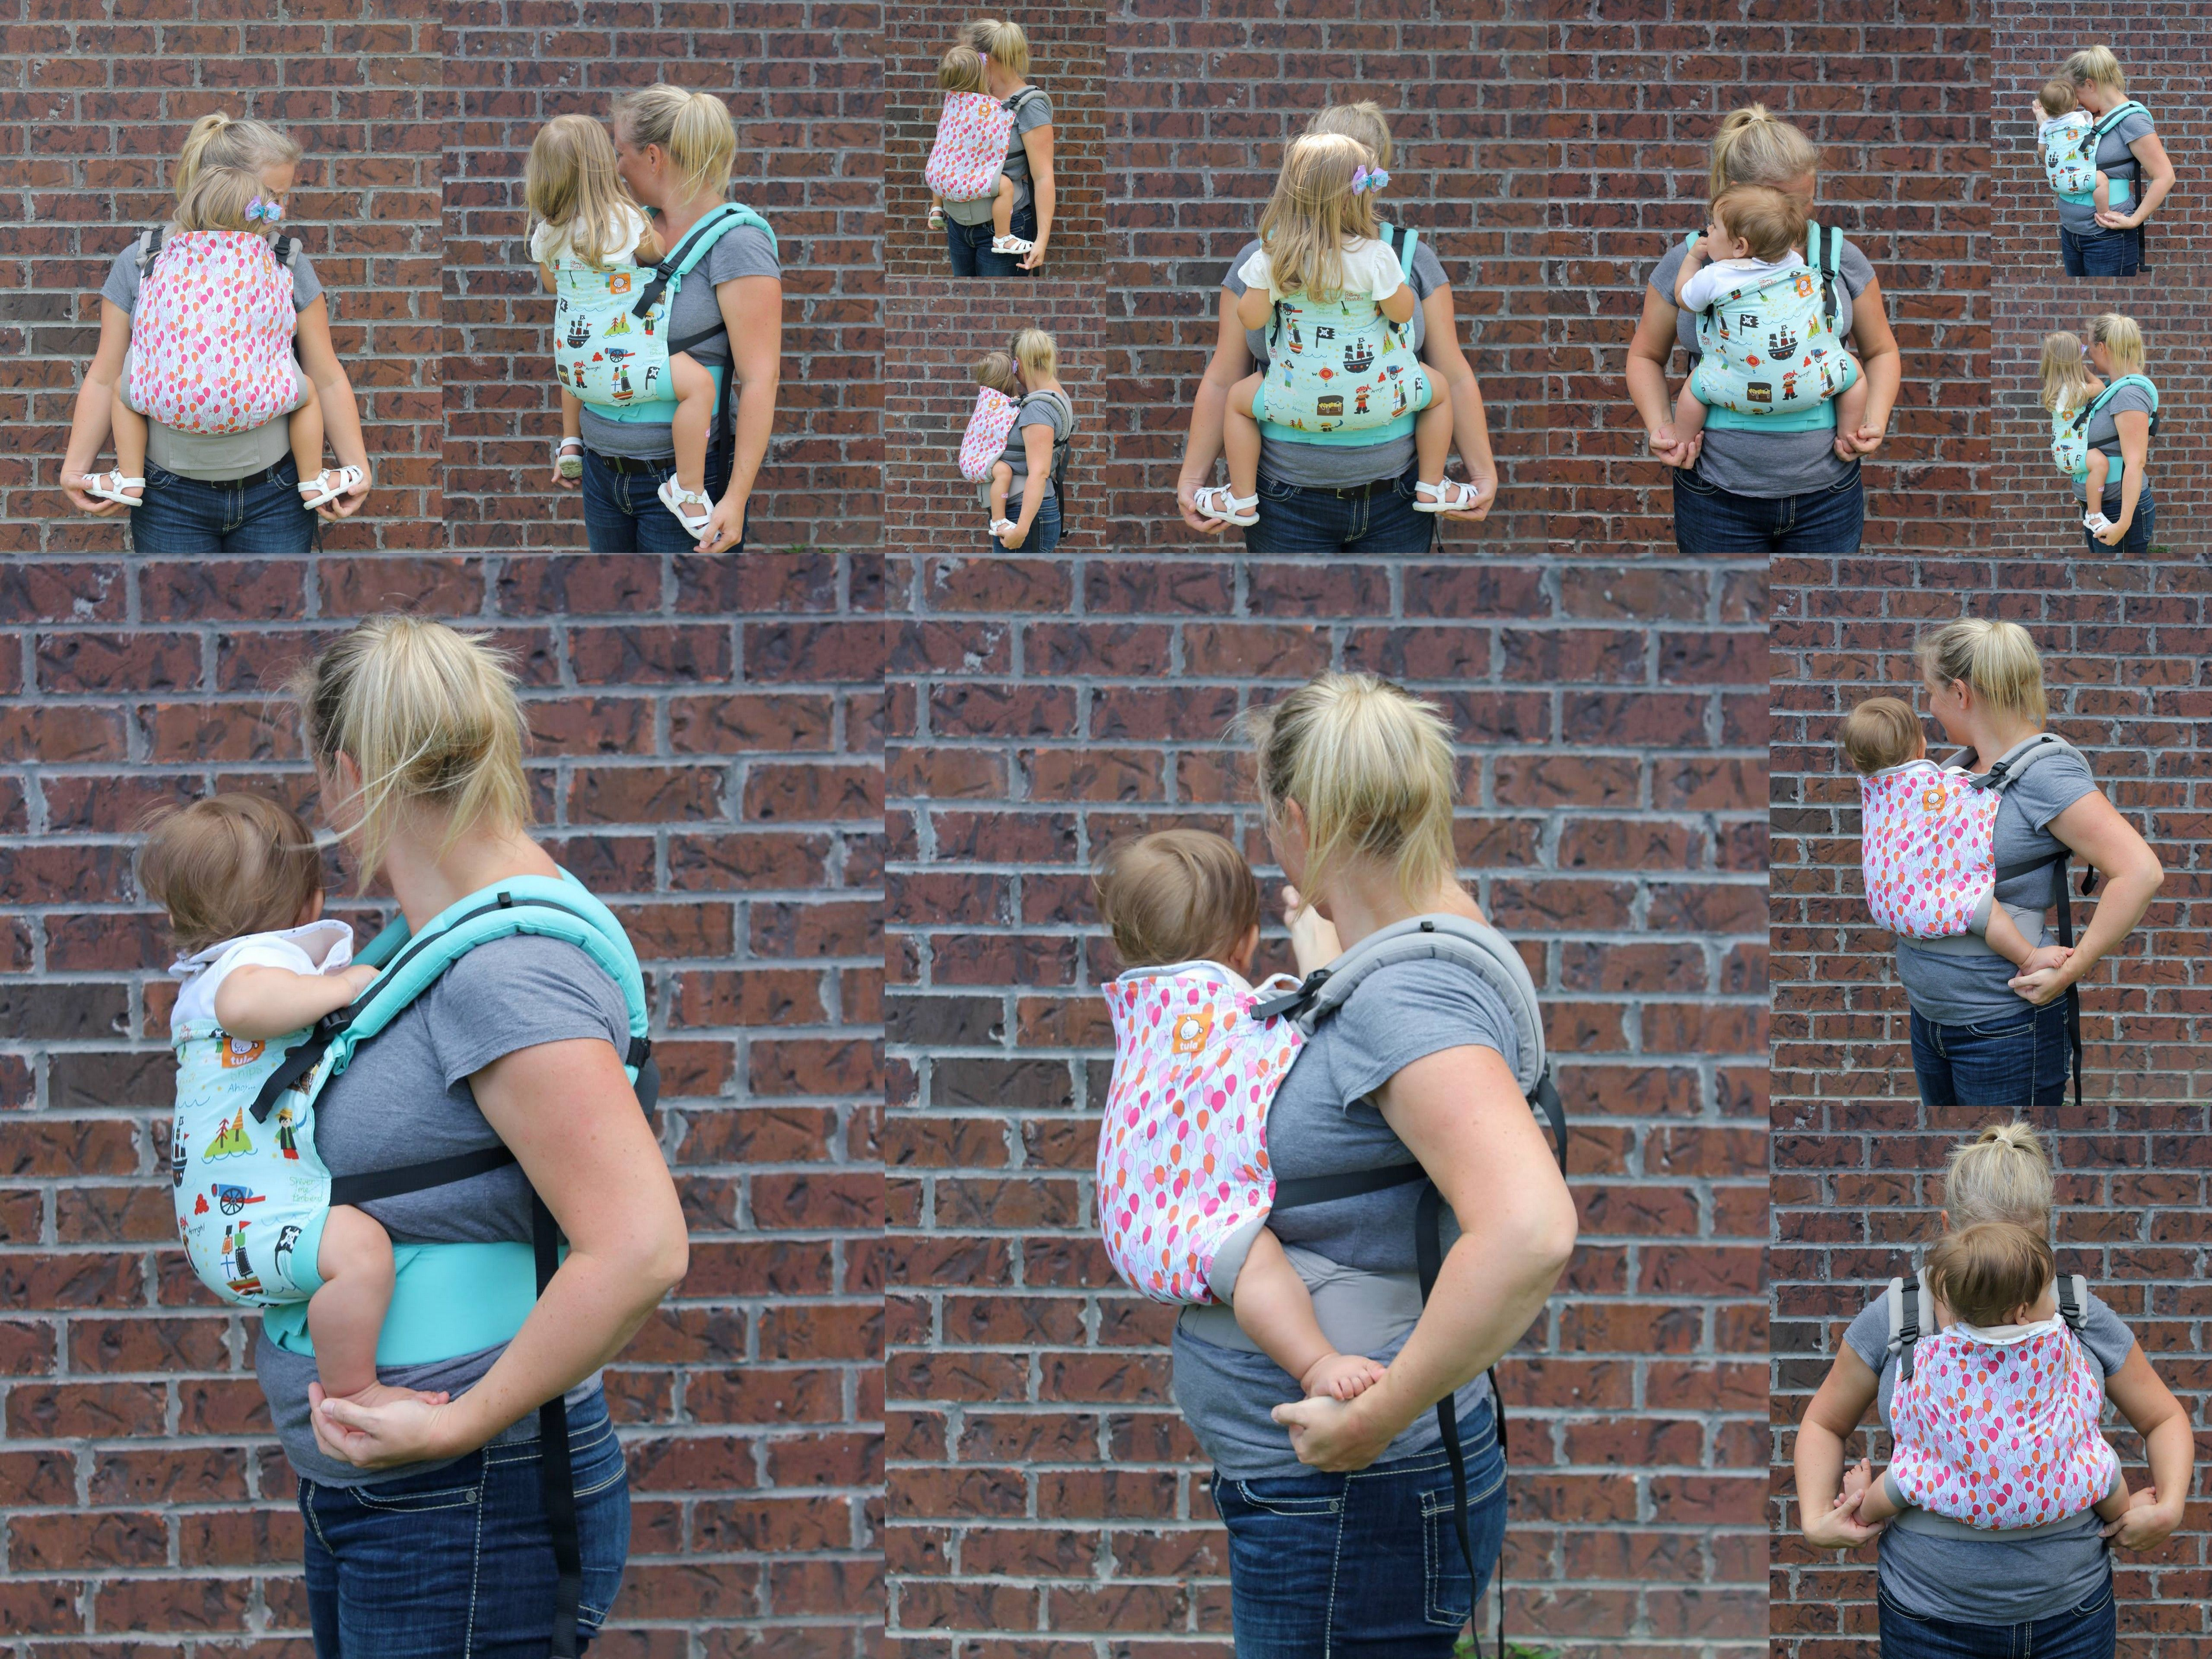 38dfdbc2217 Standard Tula vs Toddler Tula - Should I purchase a standard or toddler  Tula  This post will help you make that decision.